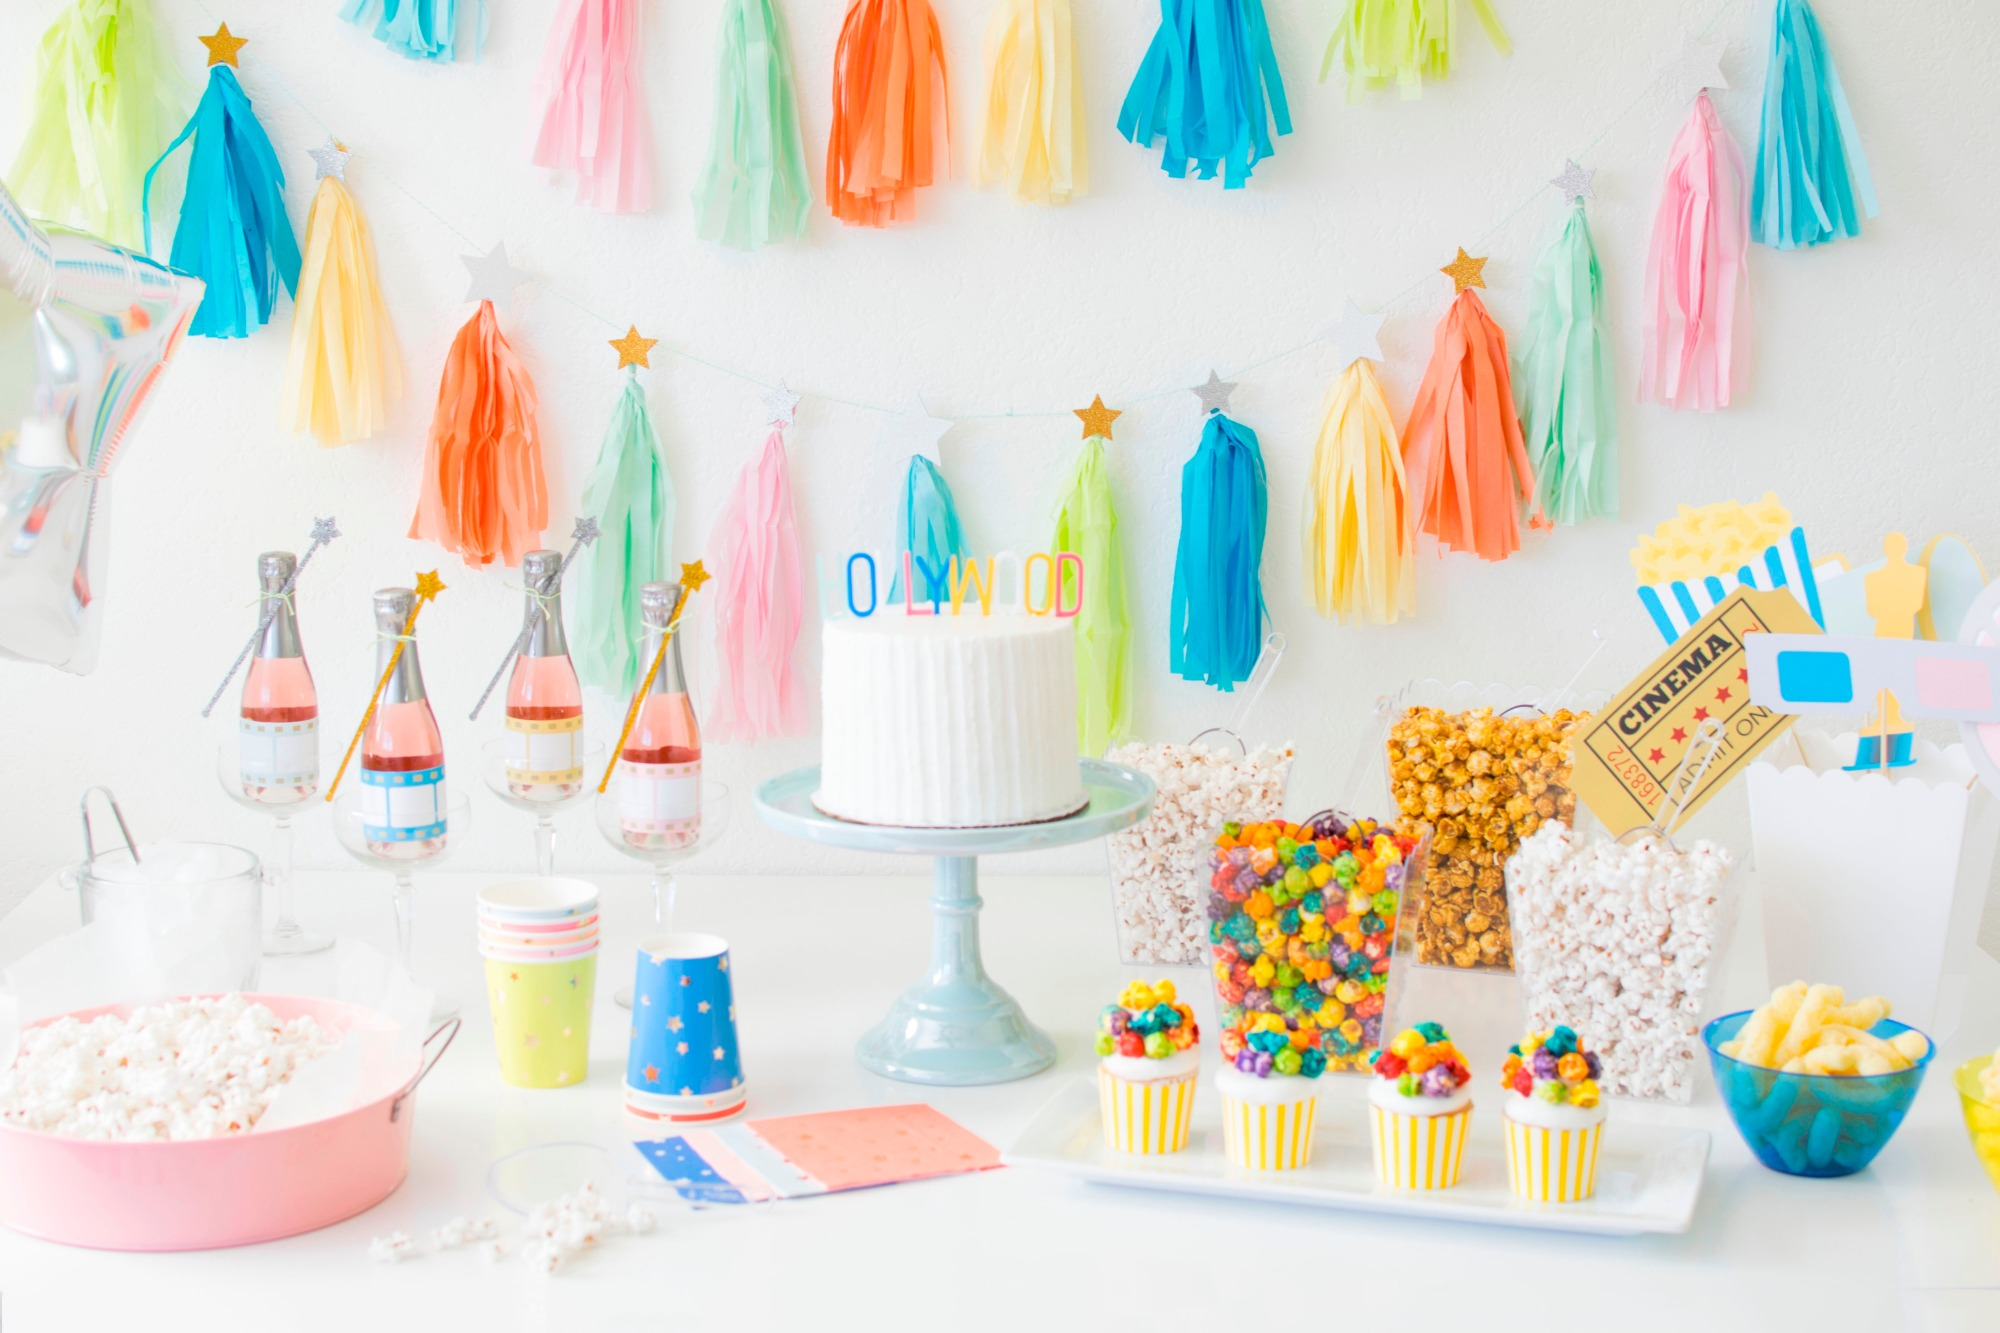 Food Table Cake Popcorn Champagne | Hollywood Glamour Party Styled by Twinkle Twinkle Little Party | Black Twine